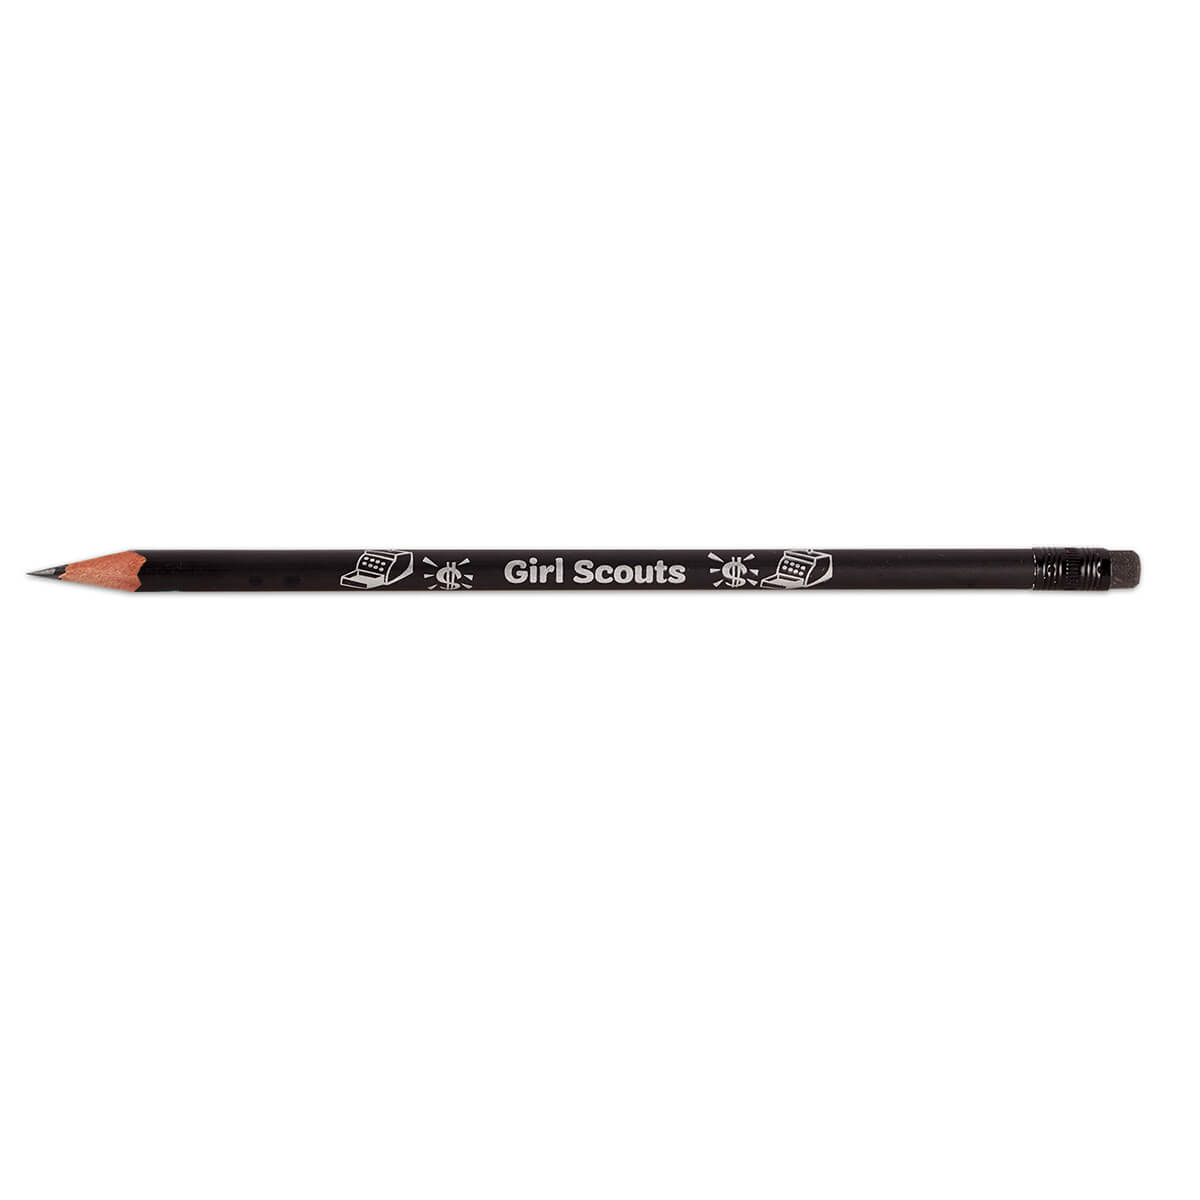 It's Your Business Pencil